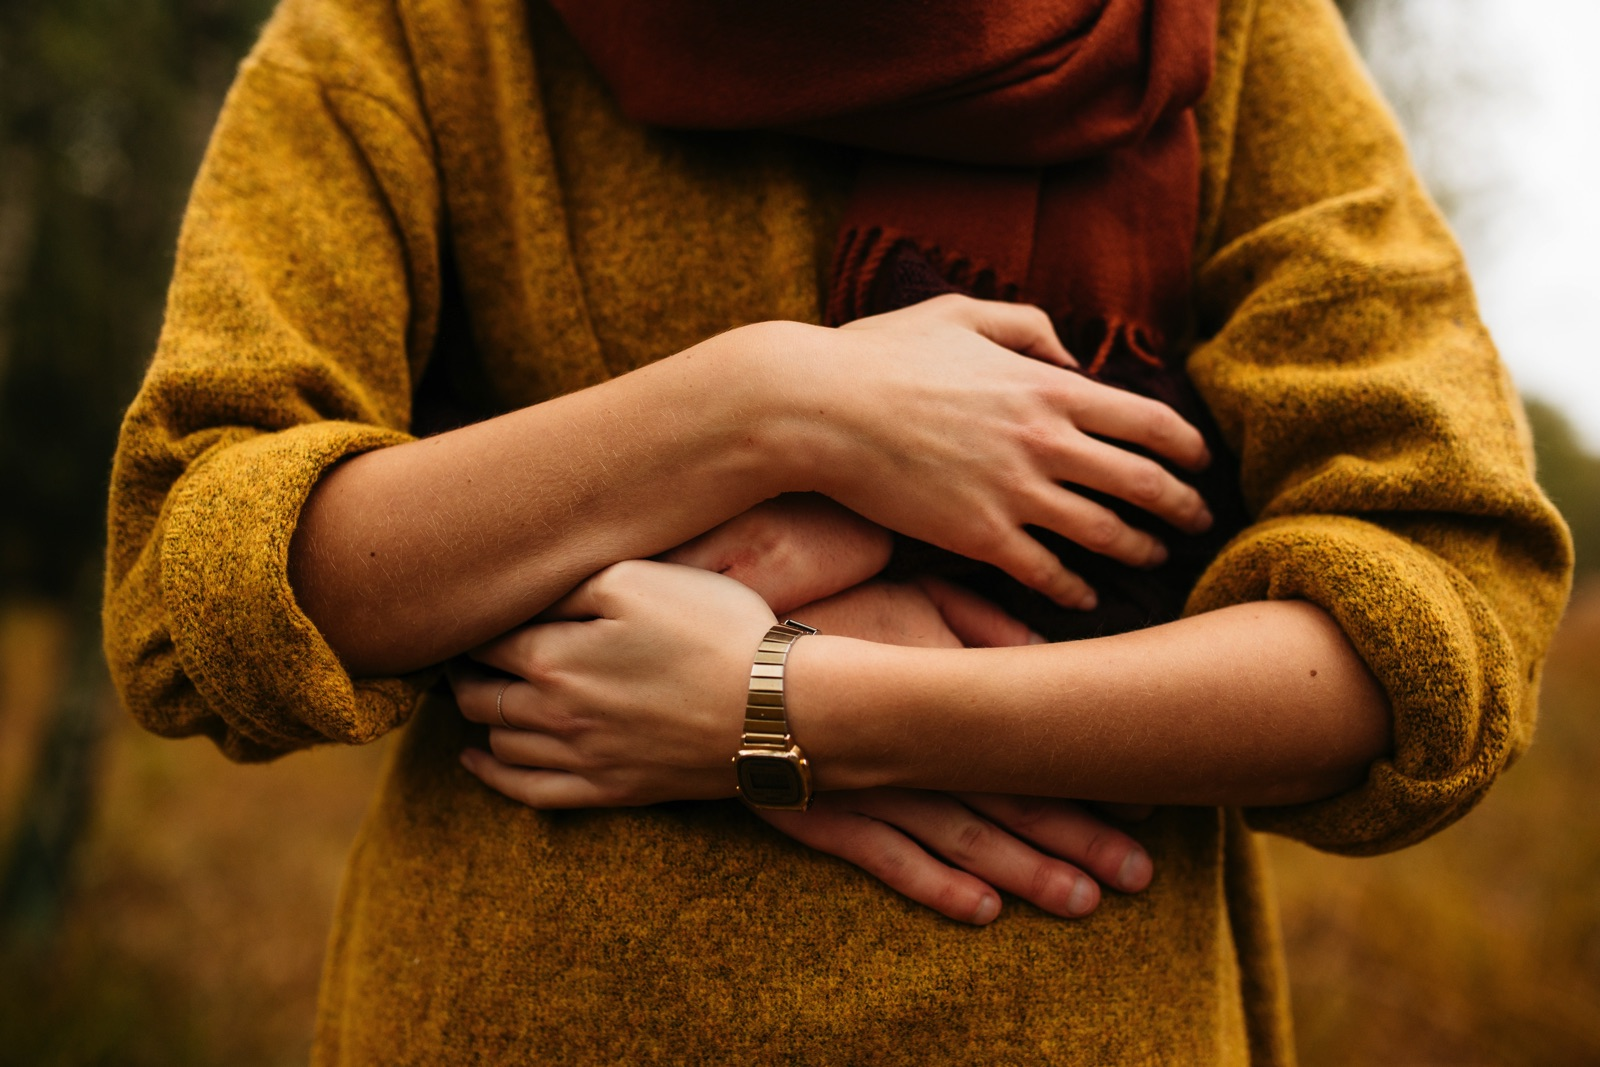 Couple's arms wrapped around stomach of woman